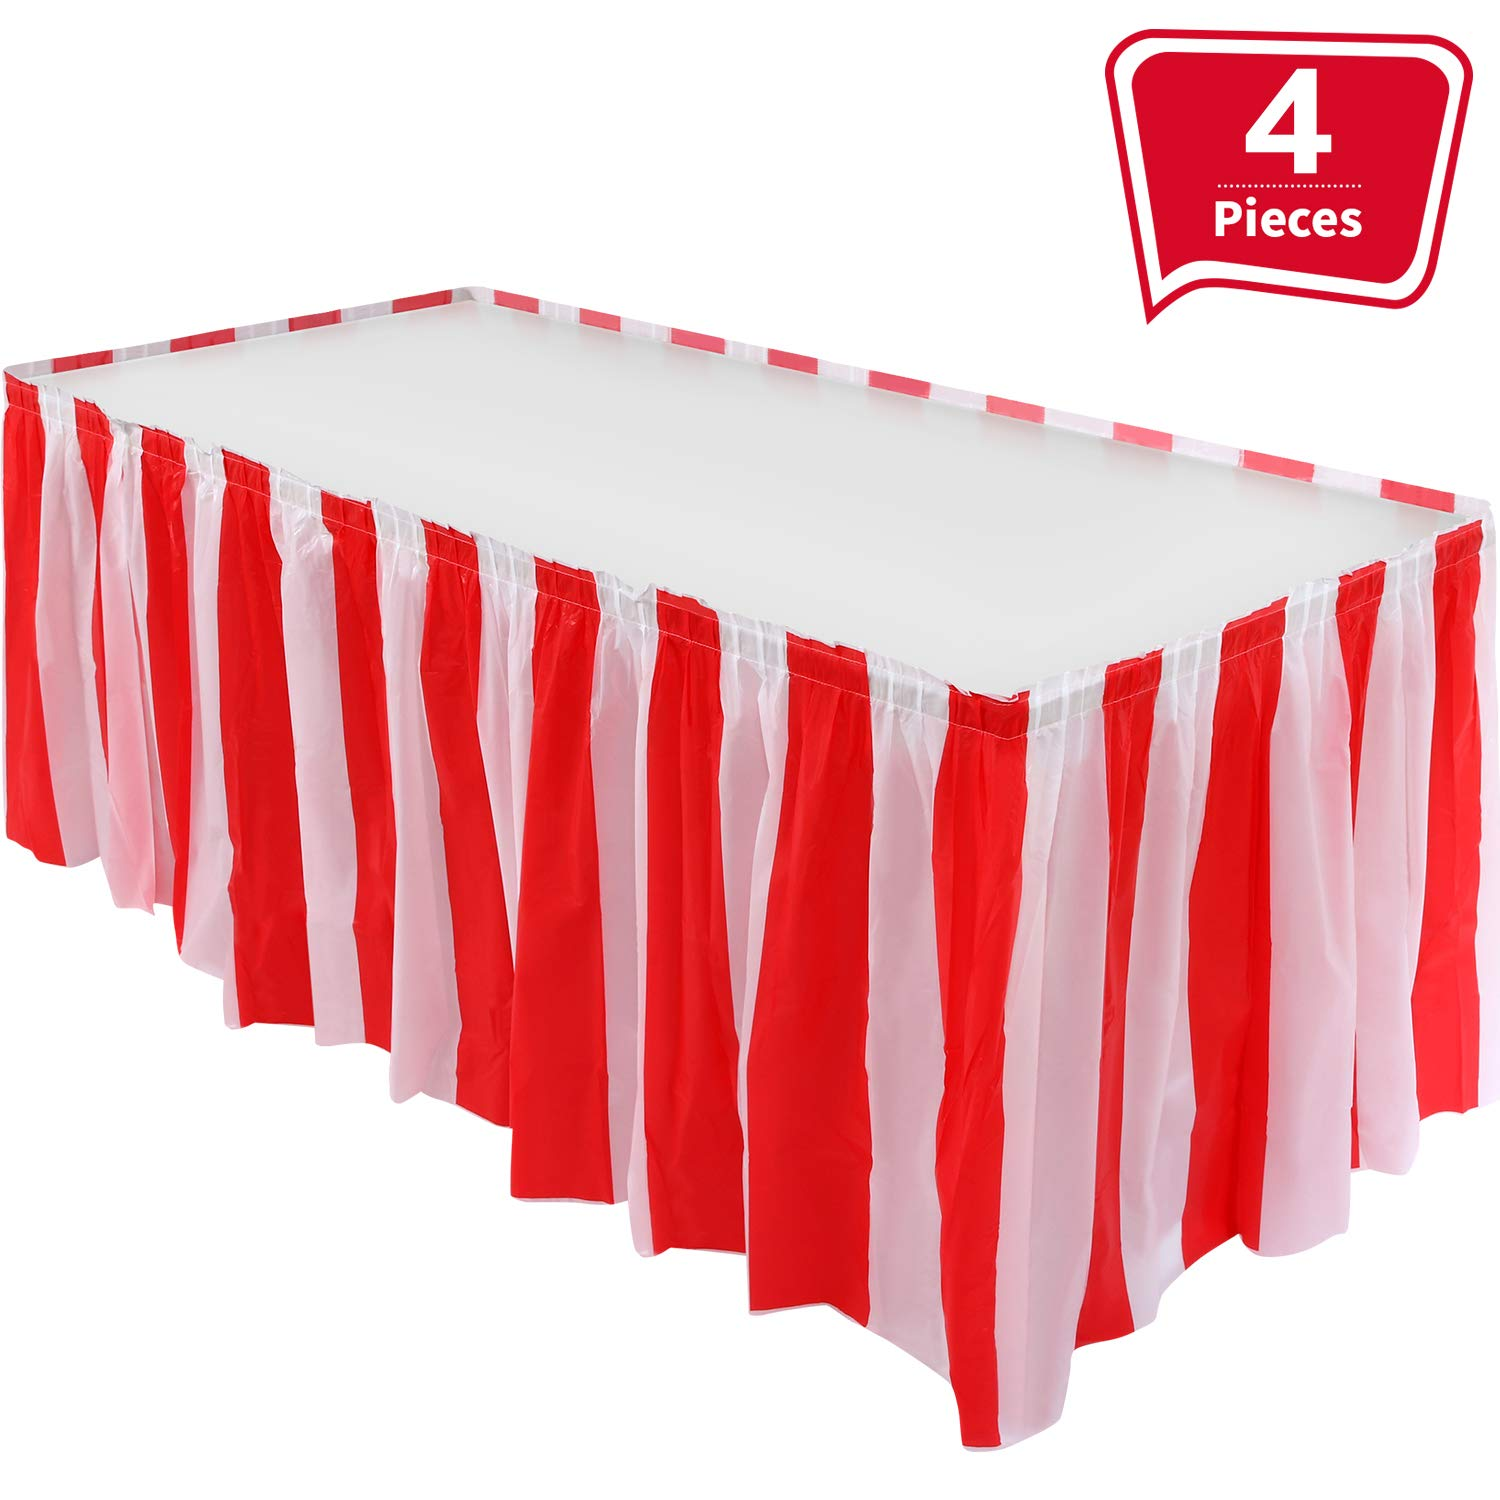 4 Pieces Red White Striped Table Skirt Circus Theme Table Skirt Carnival Table Skirt Decoration for Family Dinner Birthday Party Supplies by Pangda